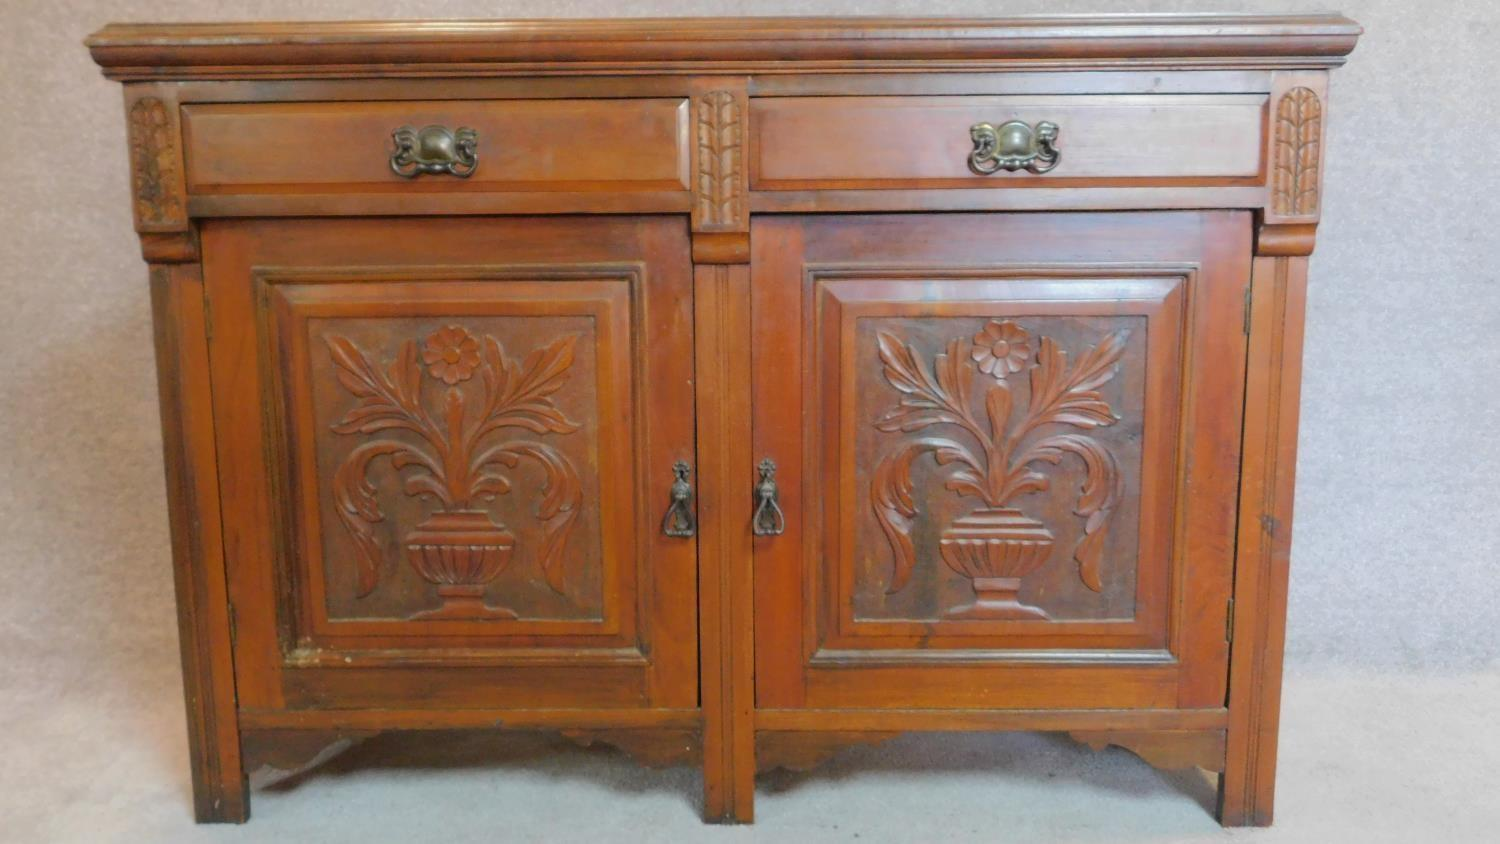 Lot 18 - A late 19th century carved walnut mirror backed sideboard. 195x135x47cm